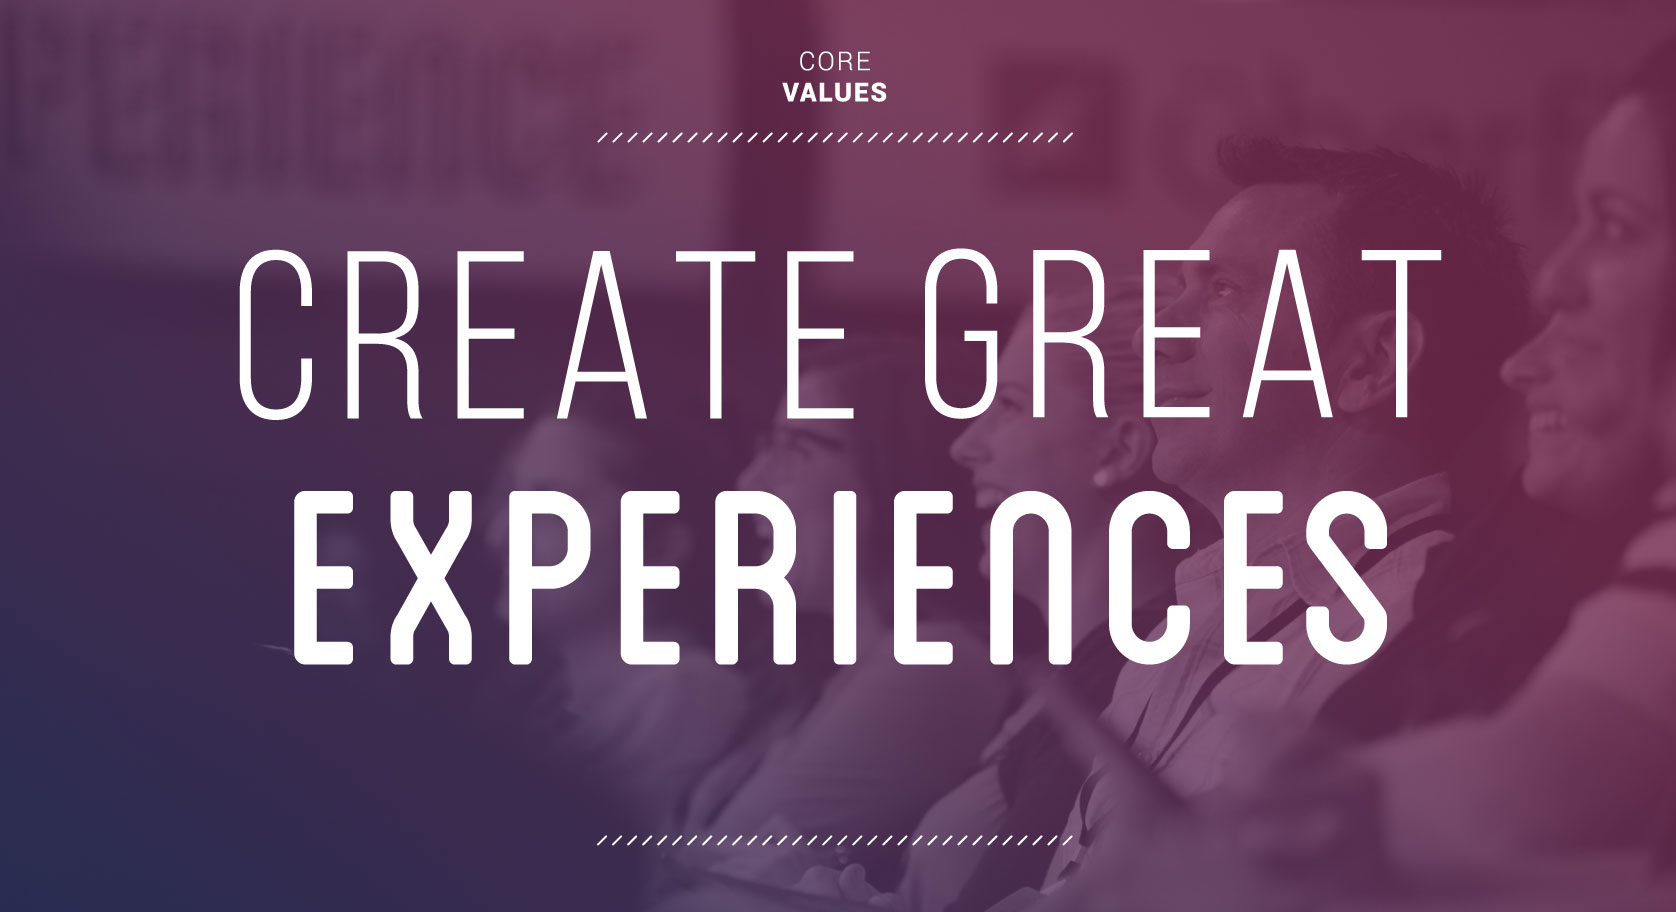 Core Value Great Experiences | Uberflip